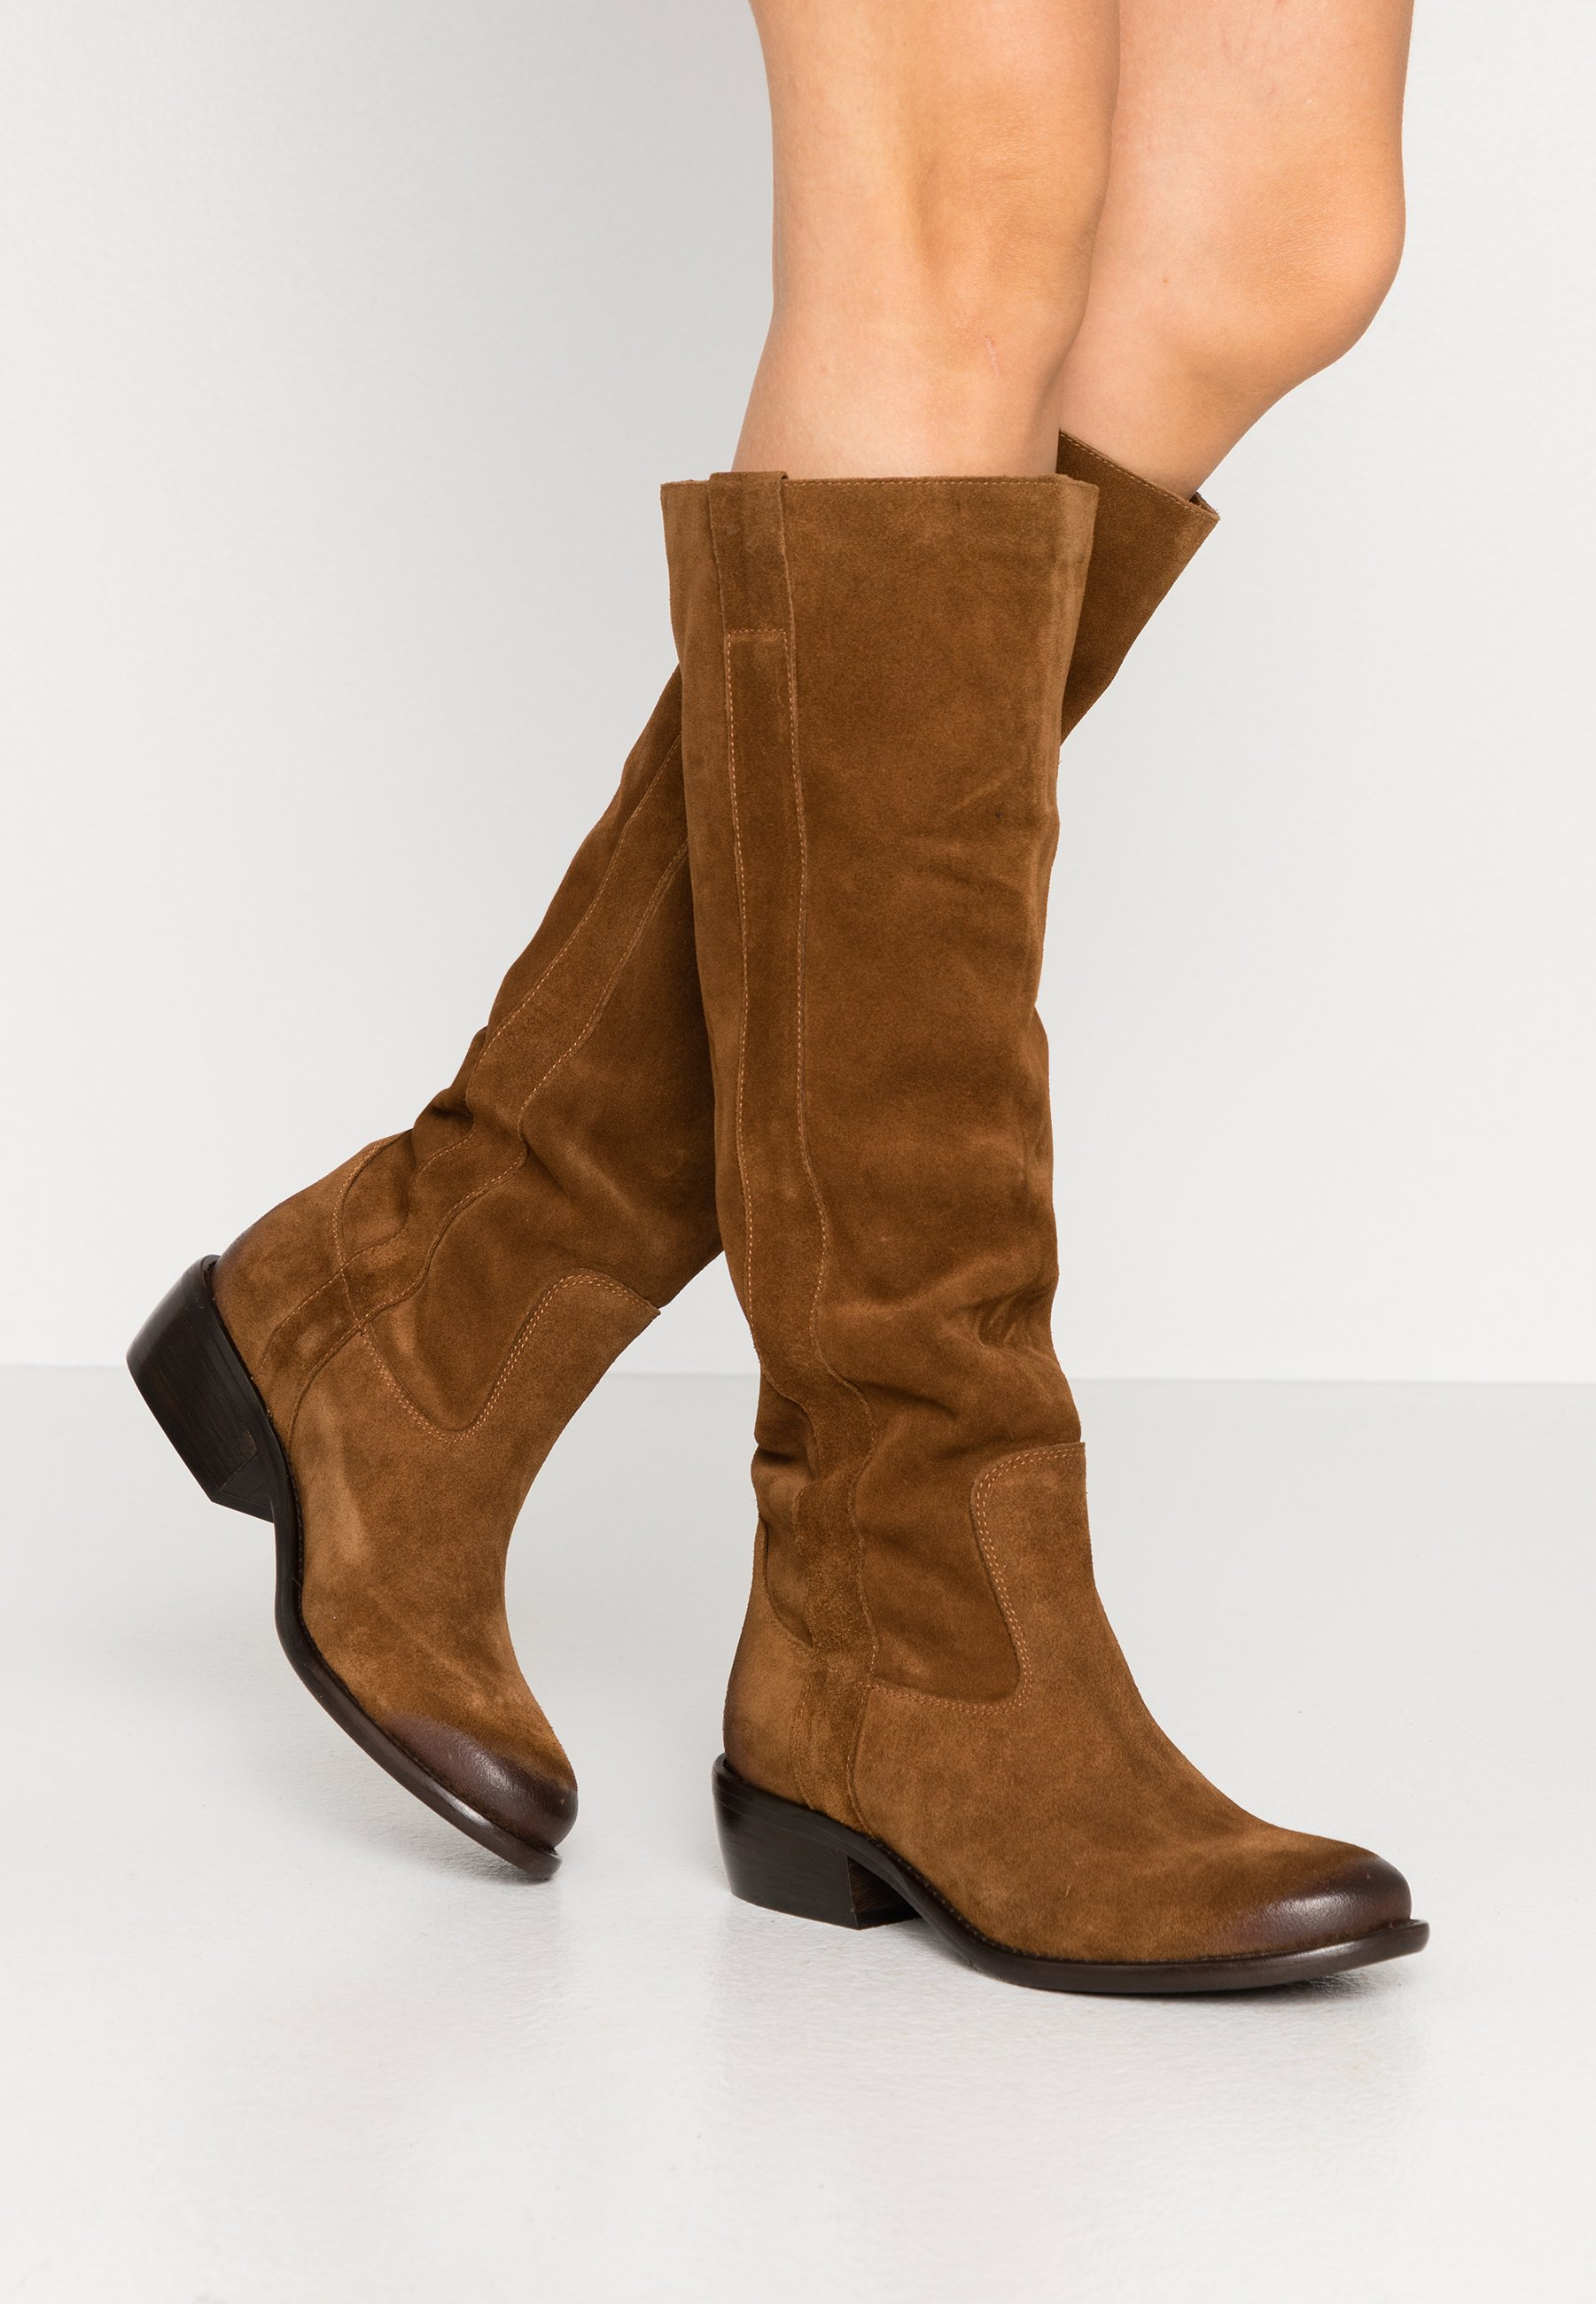 Inexpensive Cheapest Lazamani Boots - cognac | women's shoes 2020 6EaPH